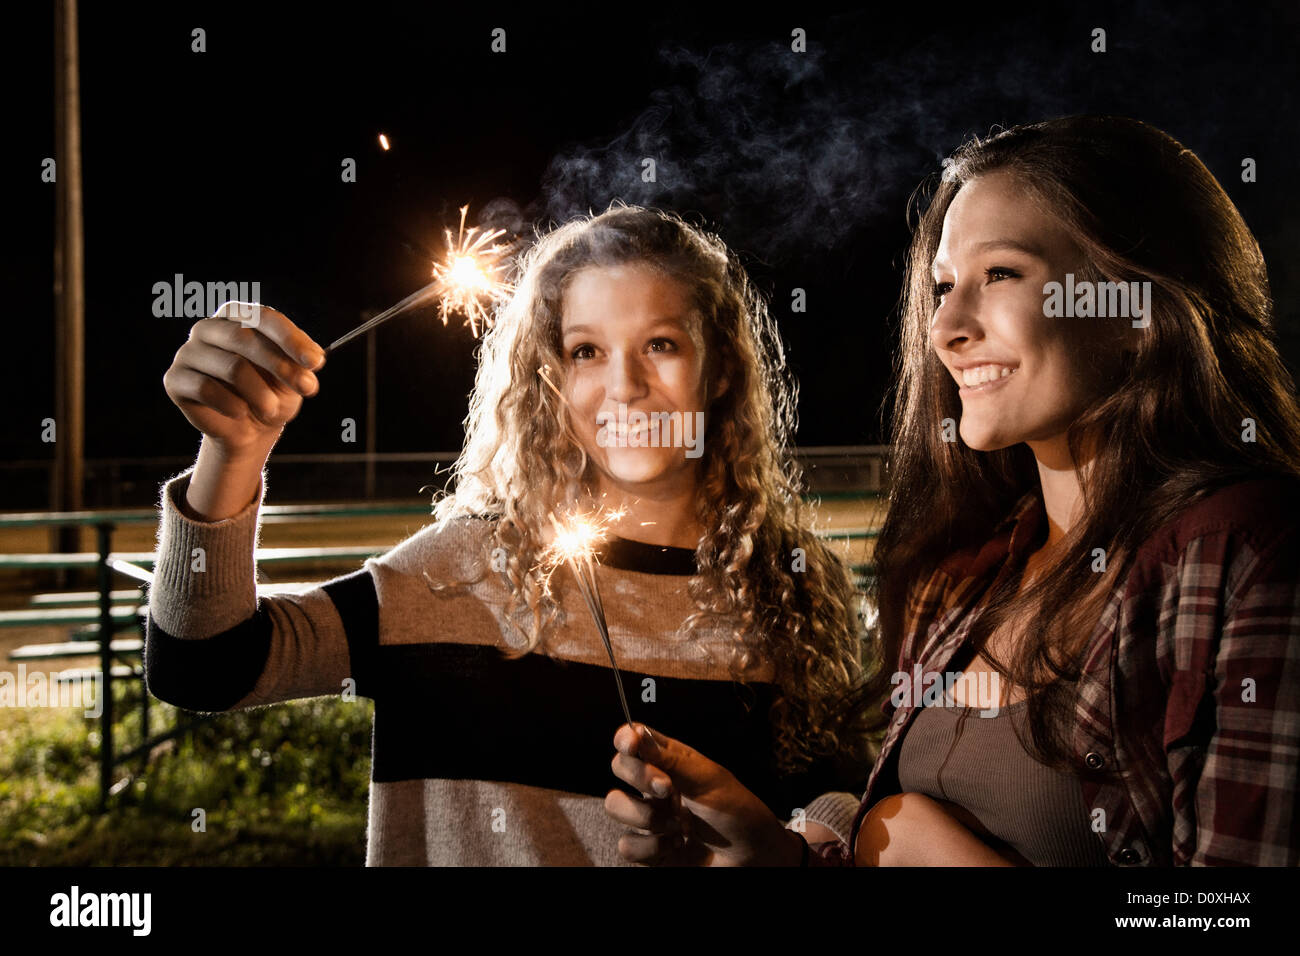 Friends holding sparklers - Stock Image